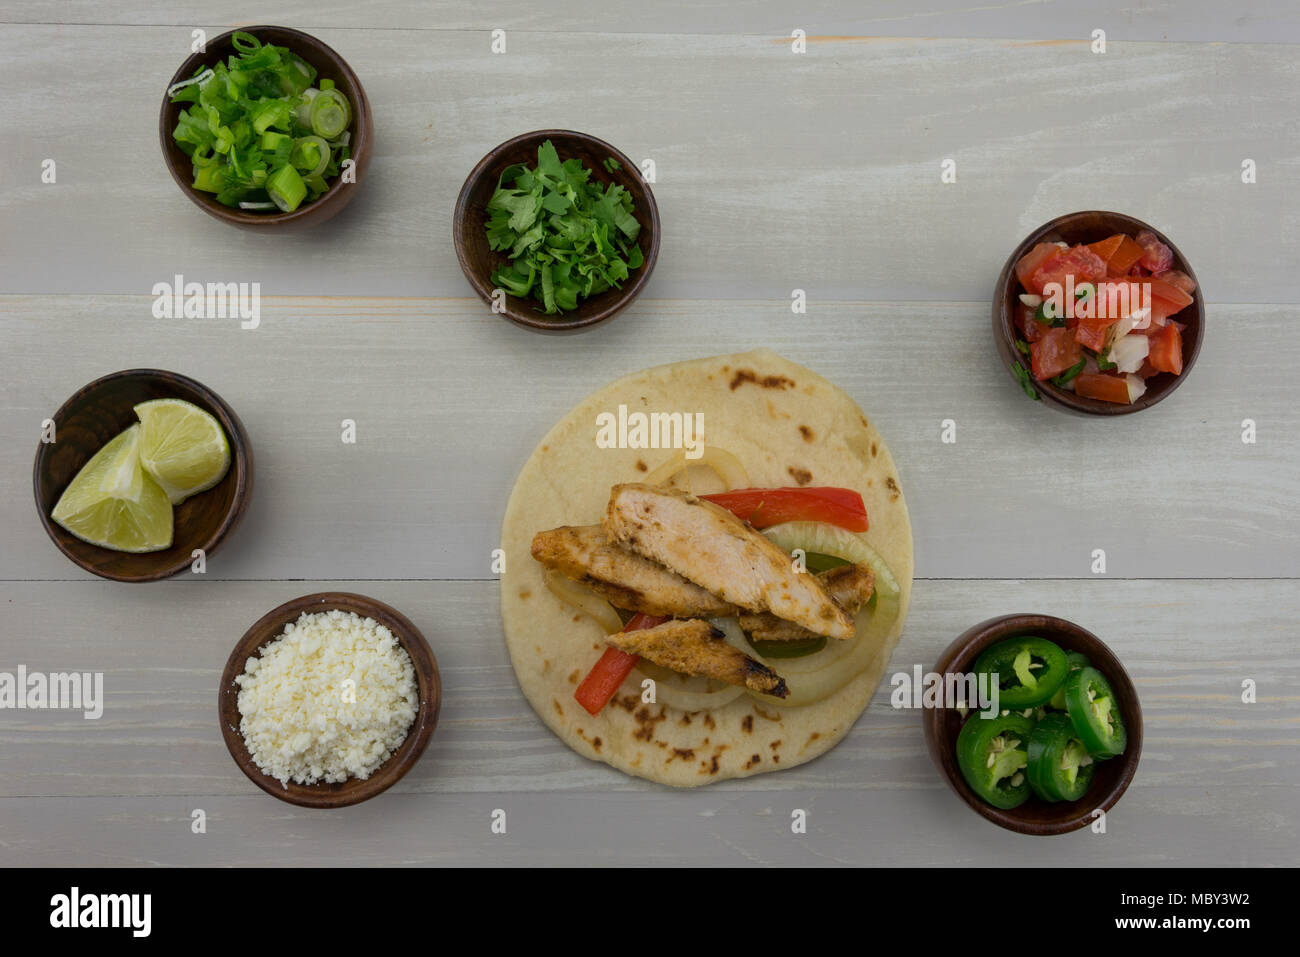 Looking Down on Single Fajita and Toppings on wooden background - Stock Image